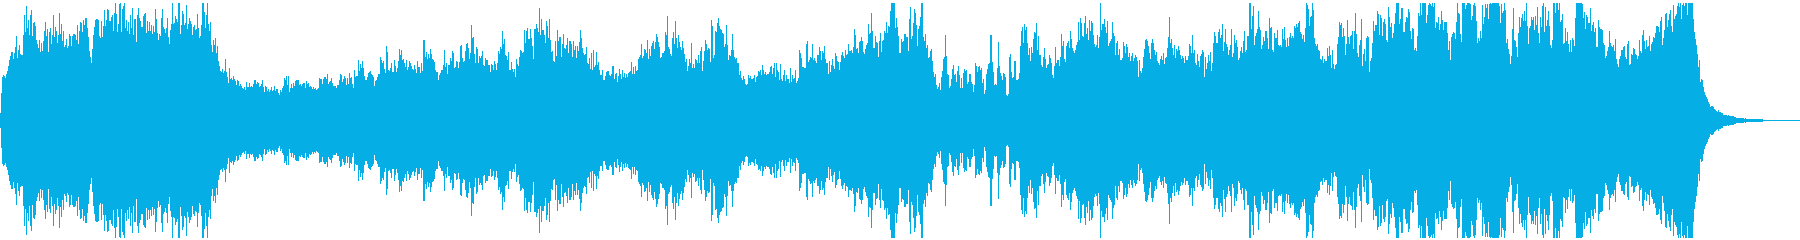 FANTASYLAND's reproduced waveform